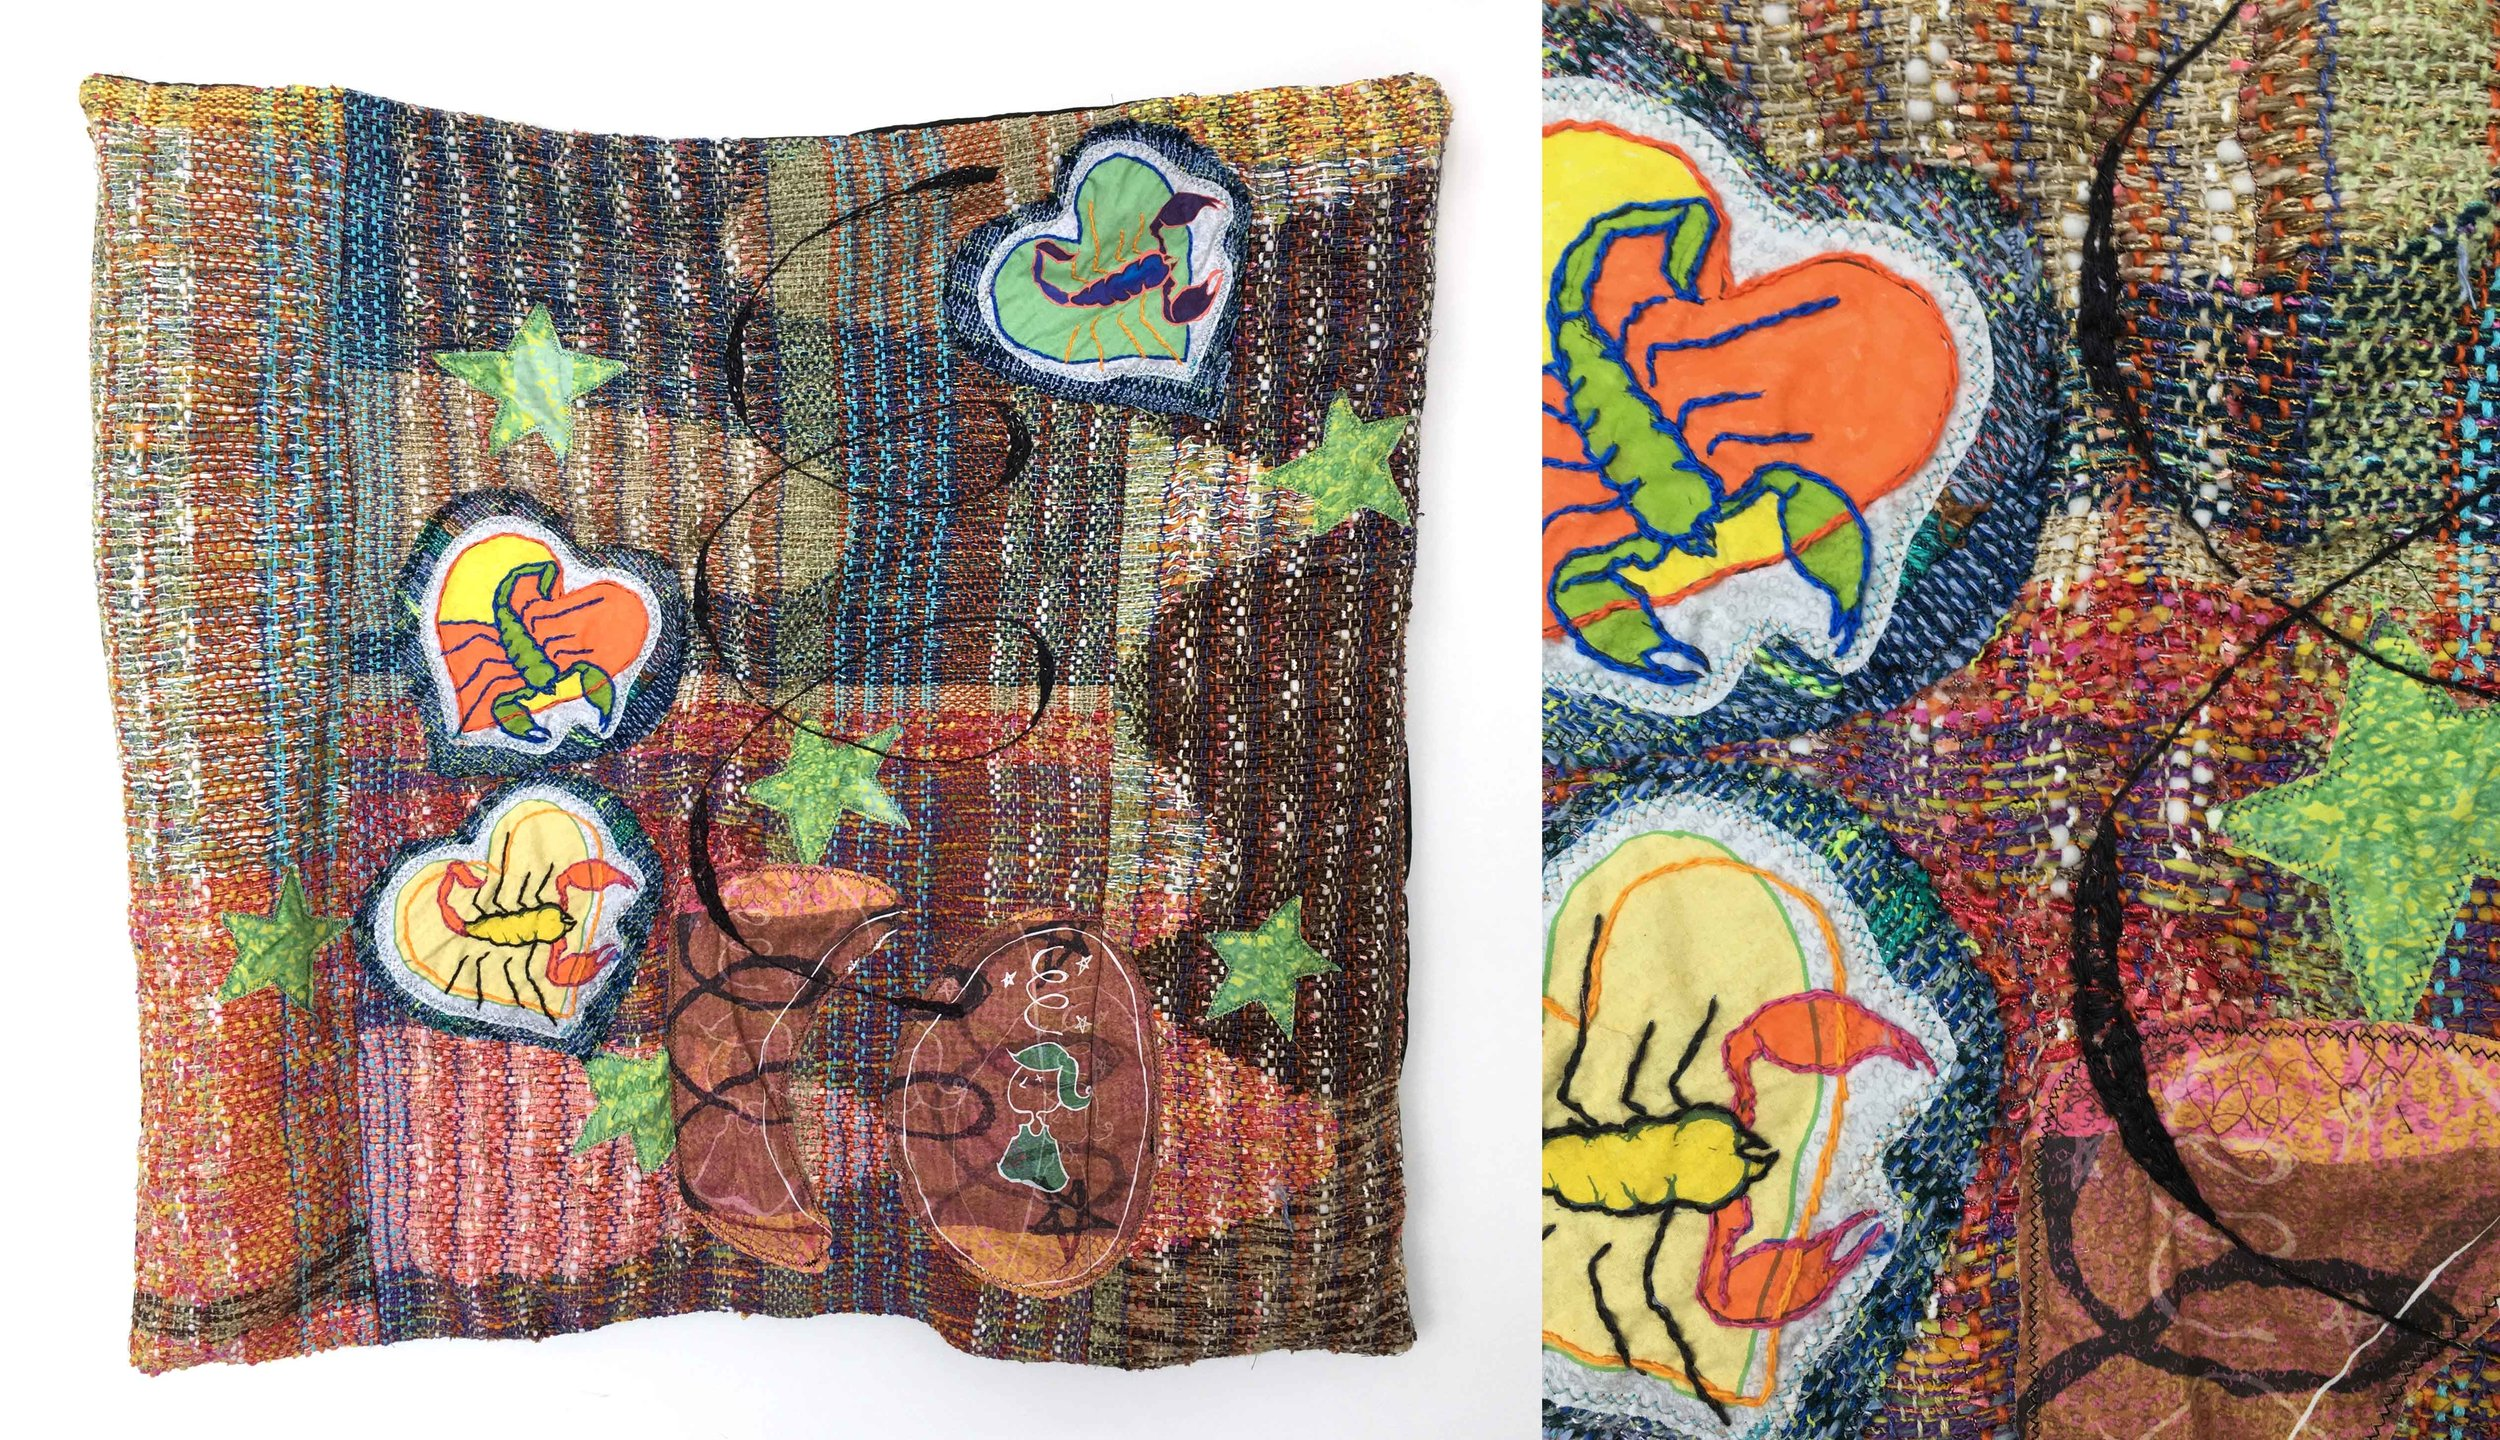 """Mixed Signals  h: 28"""" x w: 28"""" hand-woven and machine-made fabric, embroidery, inkjet prints, fleece 2017"""